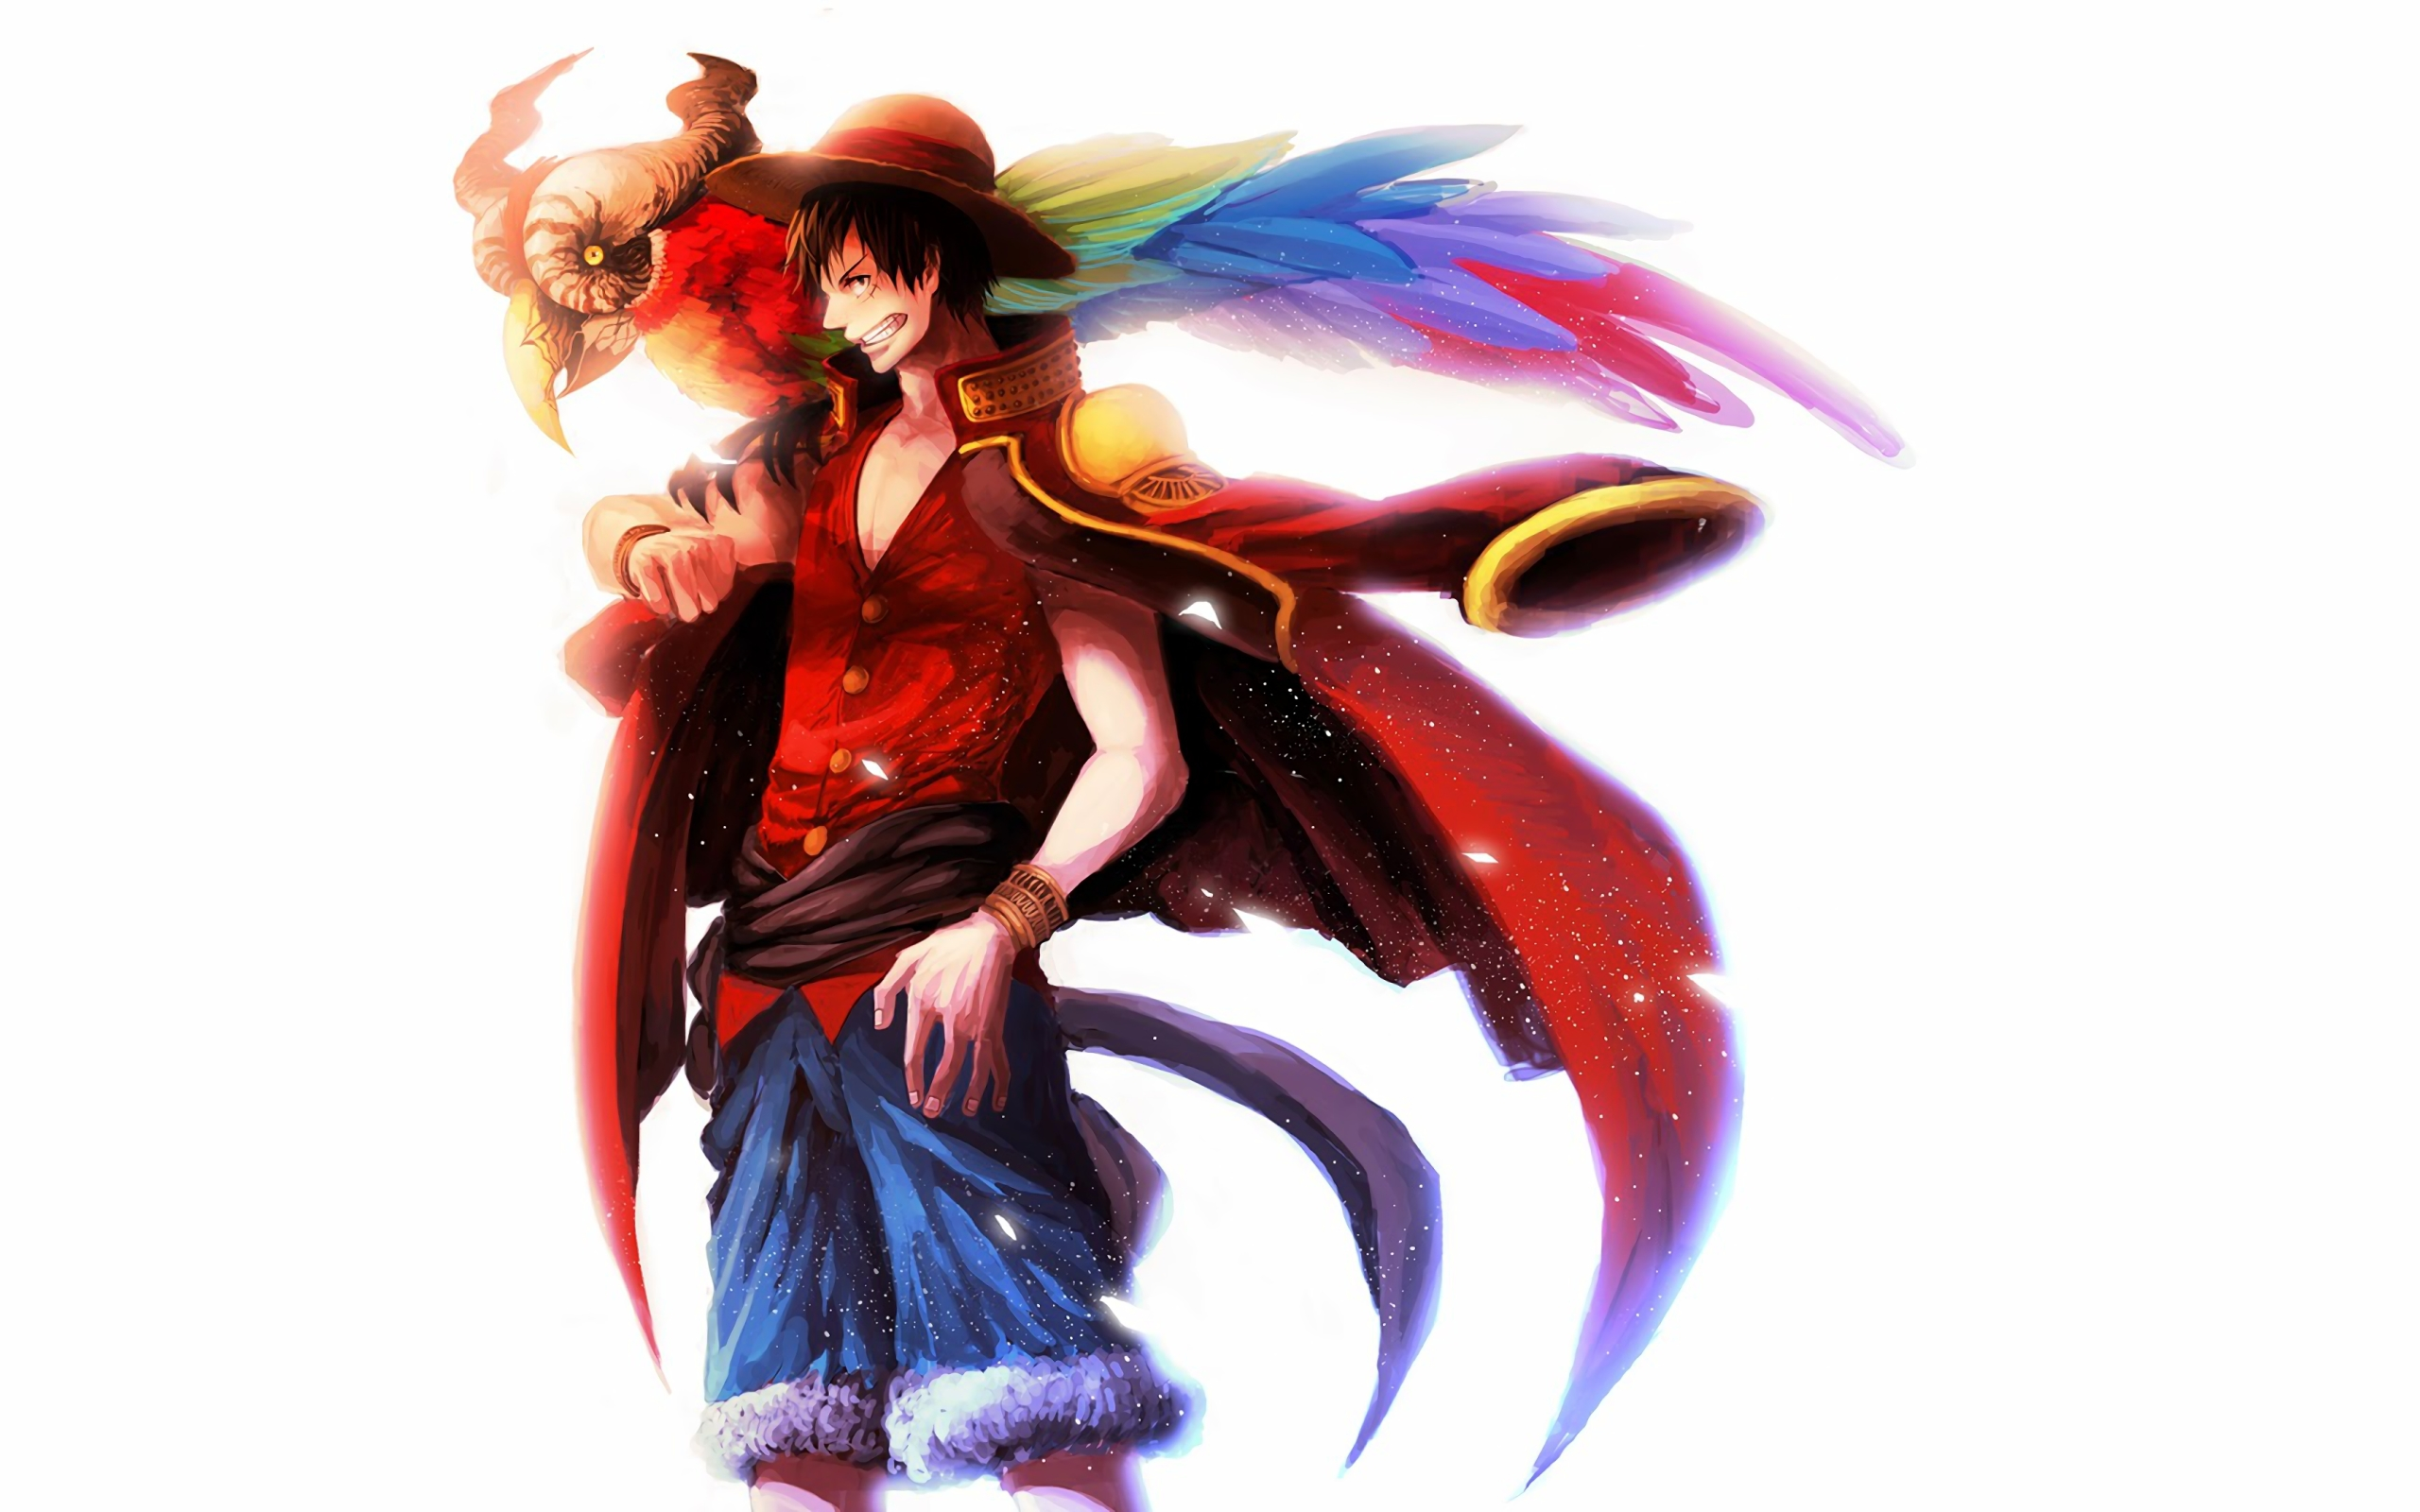 Wallpaper Anime One Piece D Luffy Desktop Picture Hd Photo